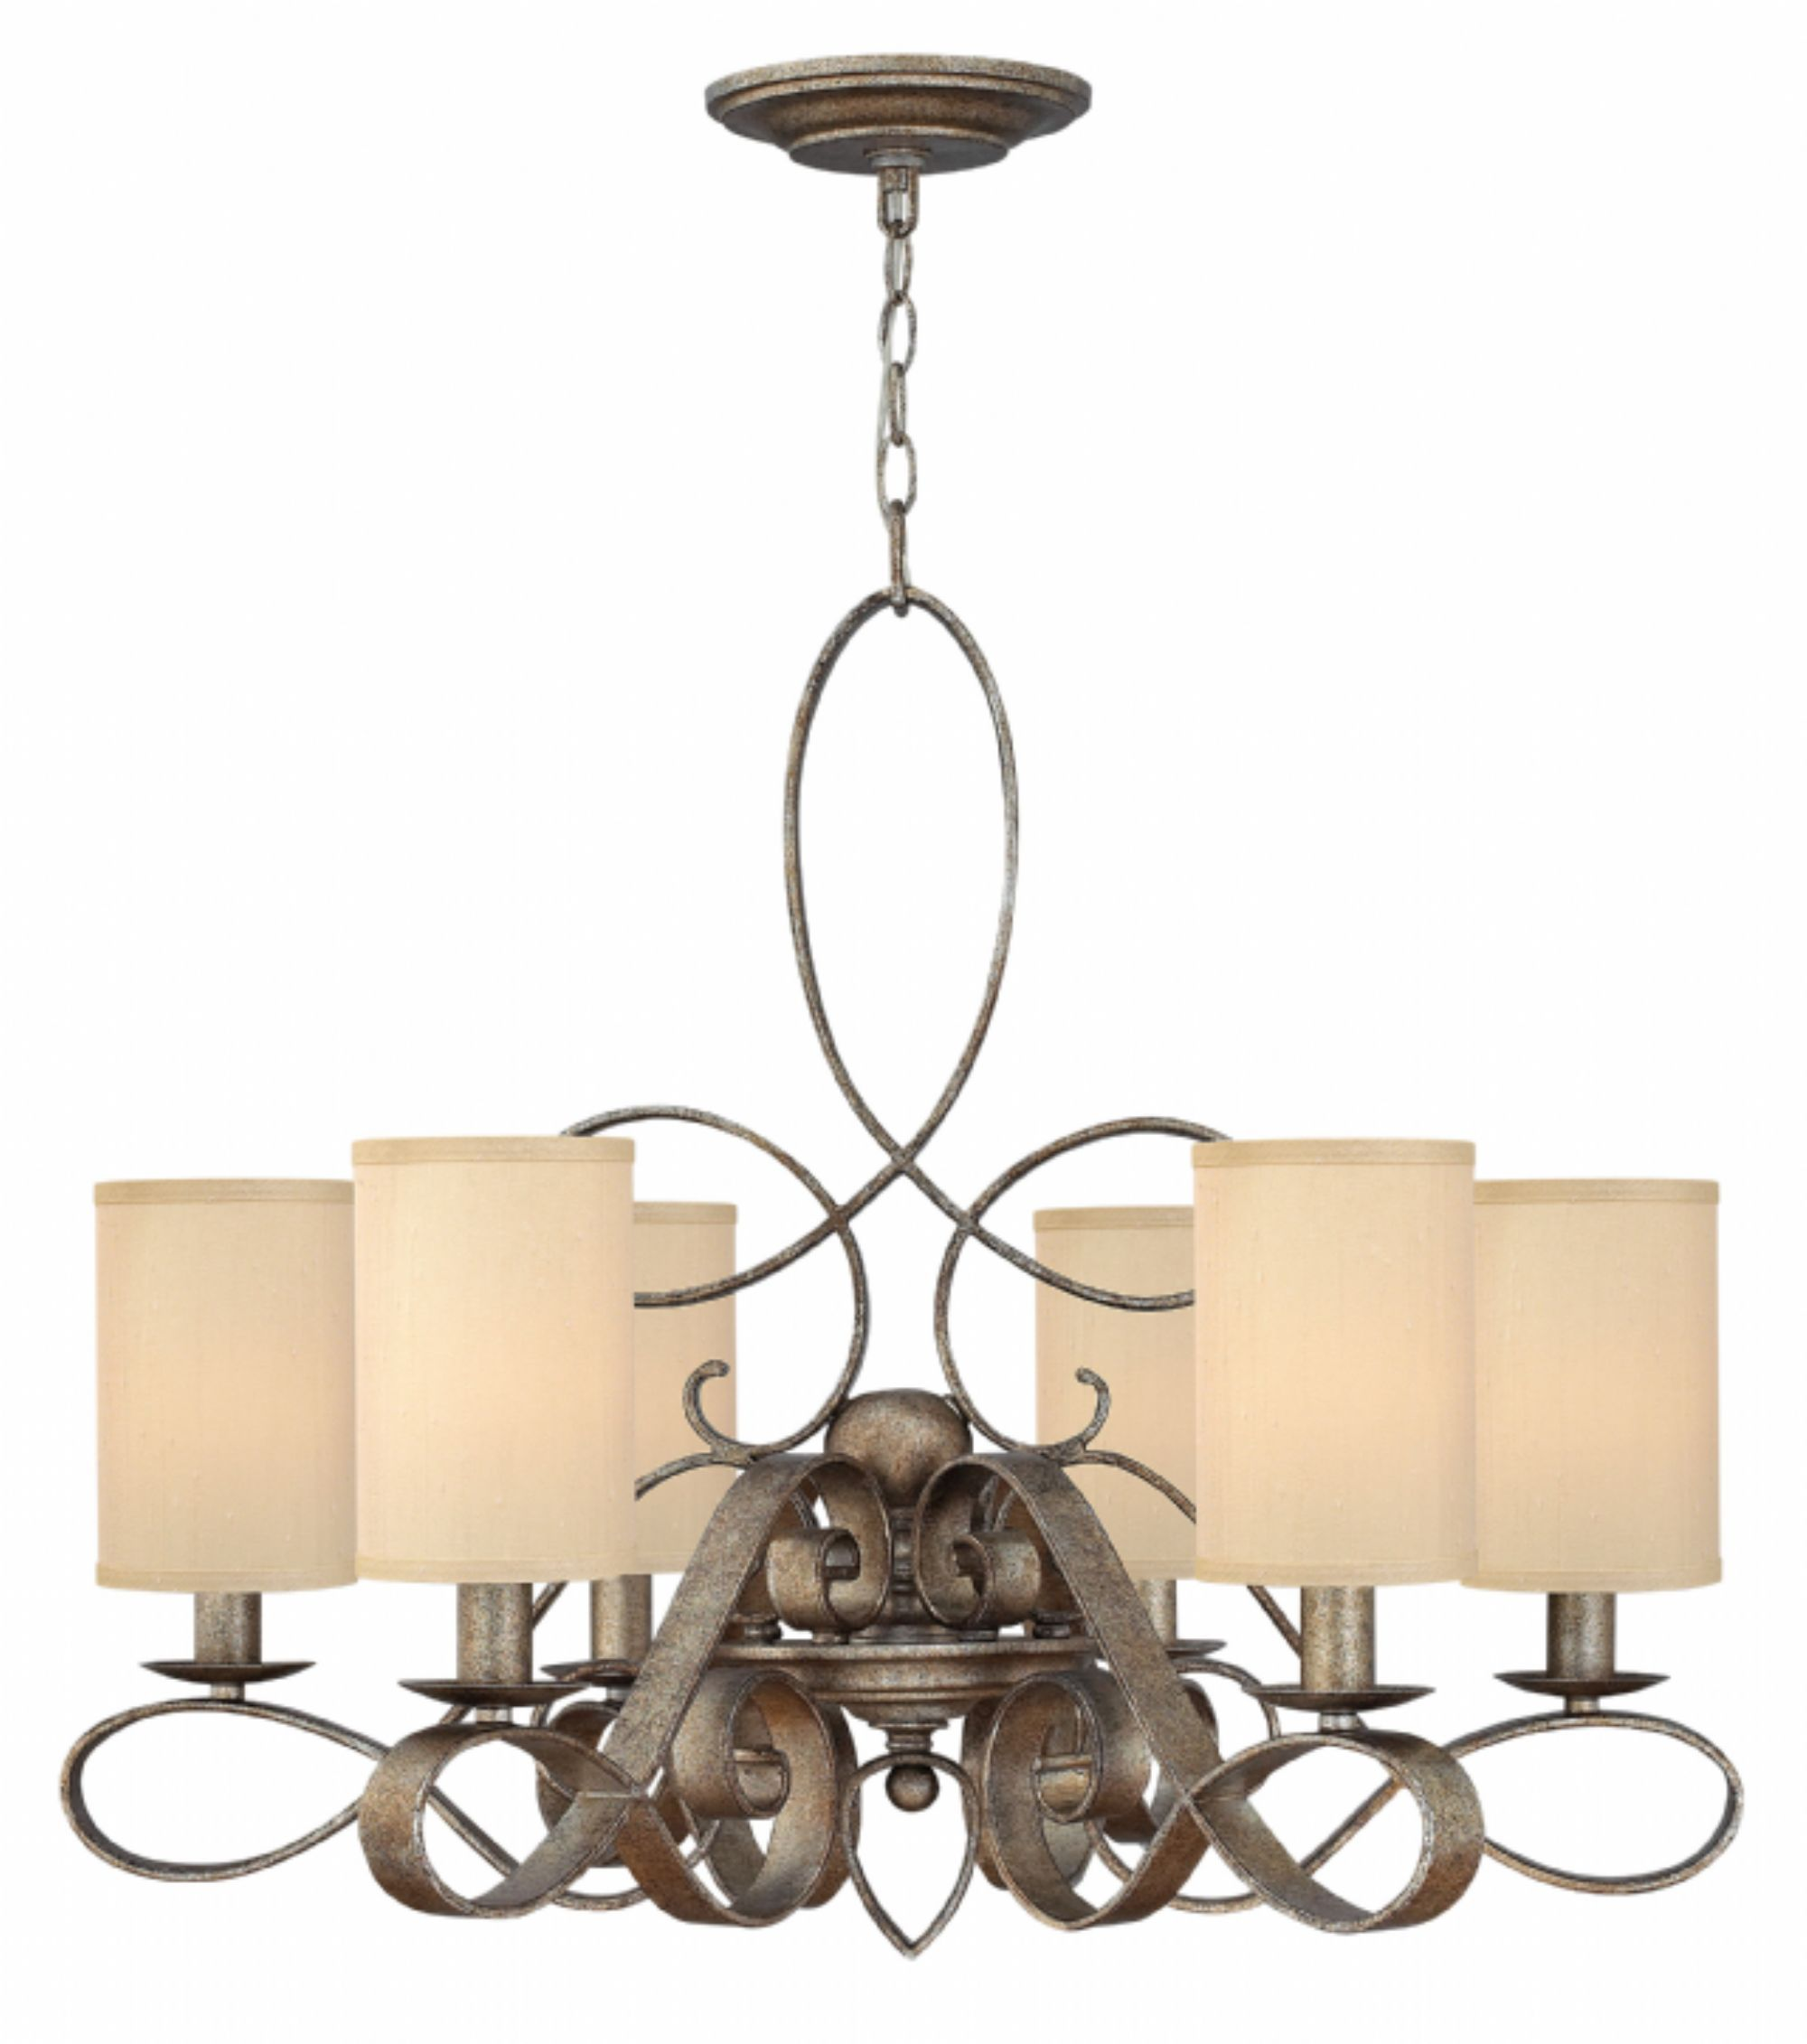 Hinkley lighting monterey fr42506bme dining room pinterest hinkley lighting monterey fr42506bme aloadofball Image collections